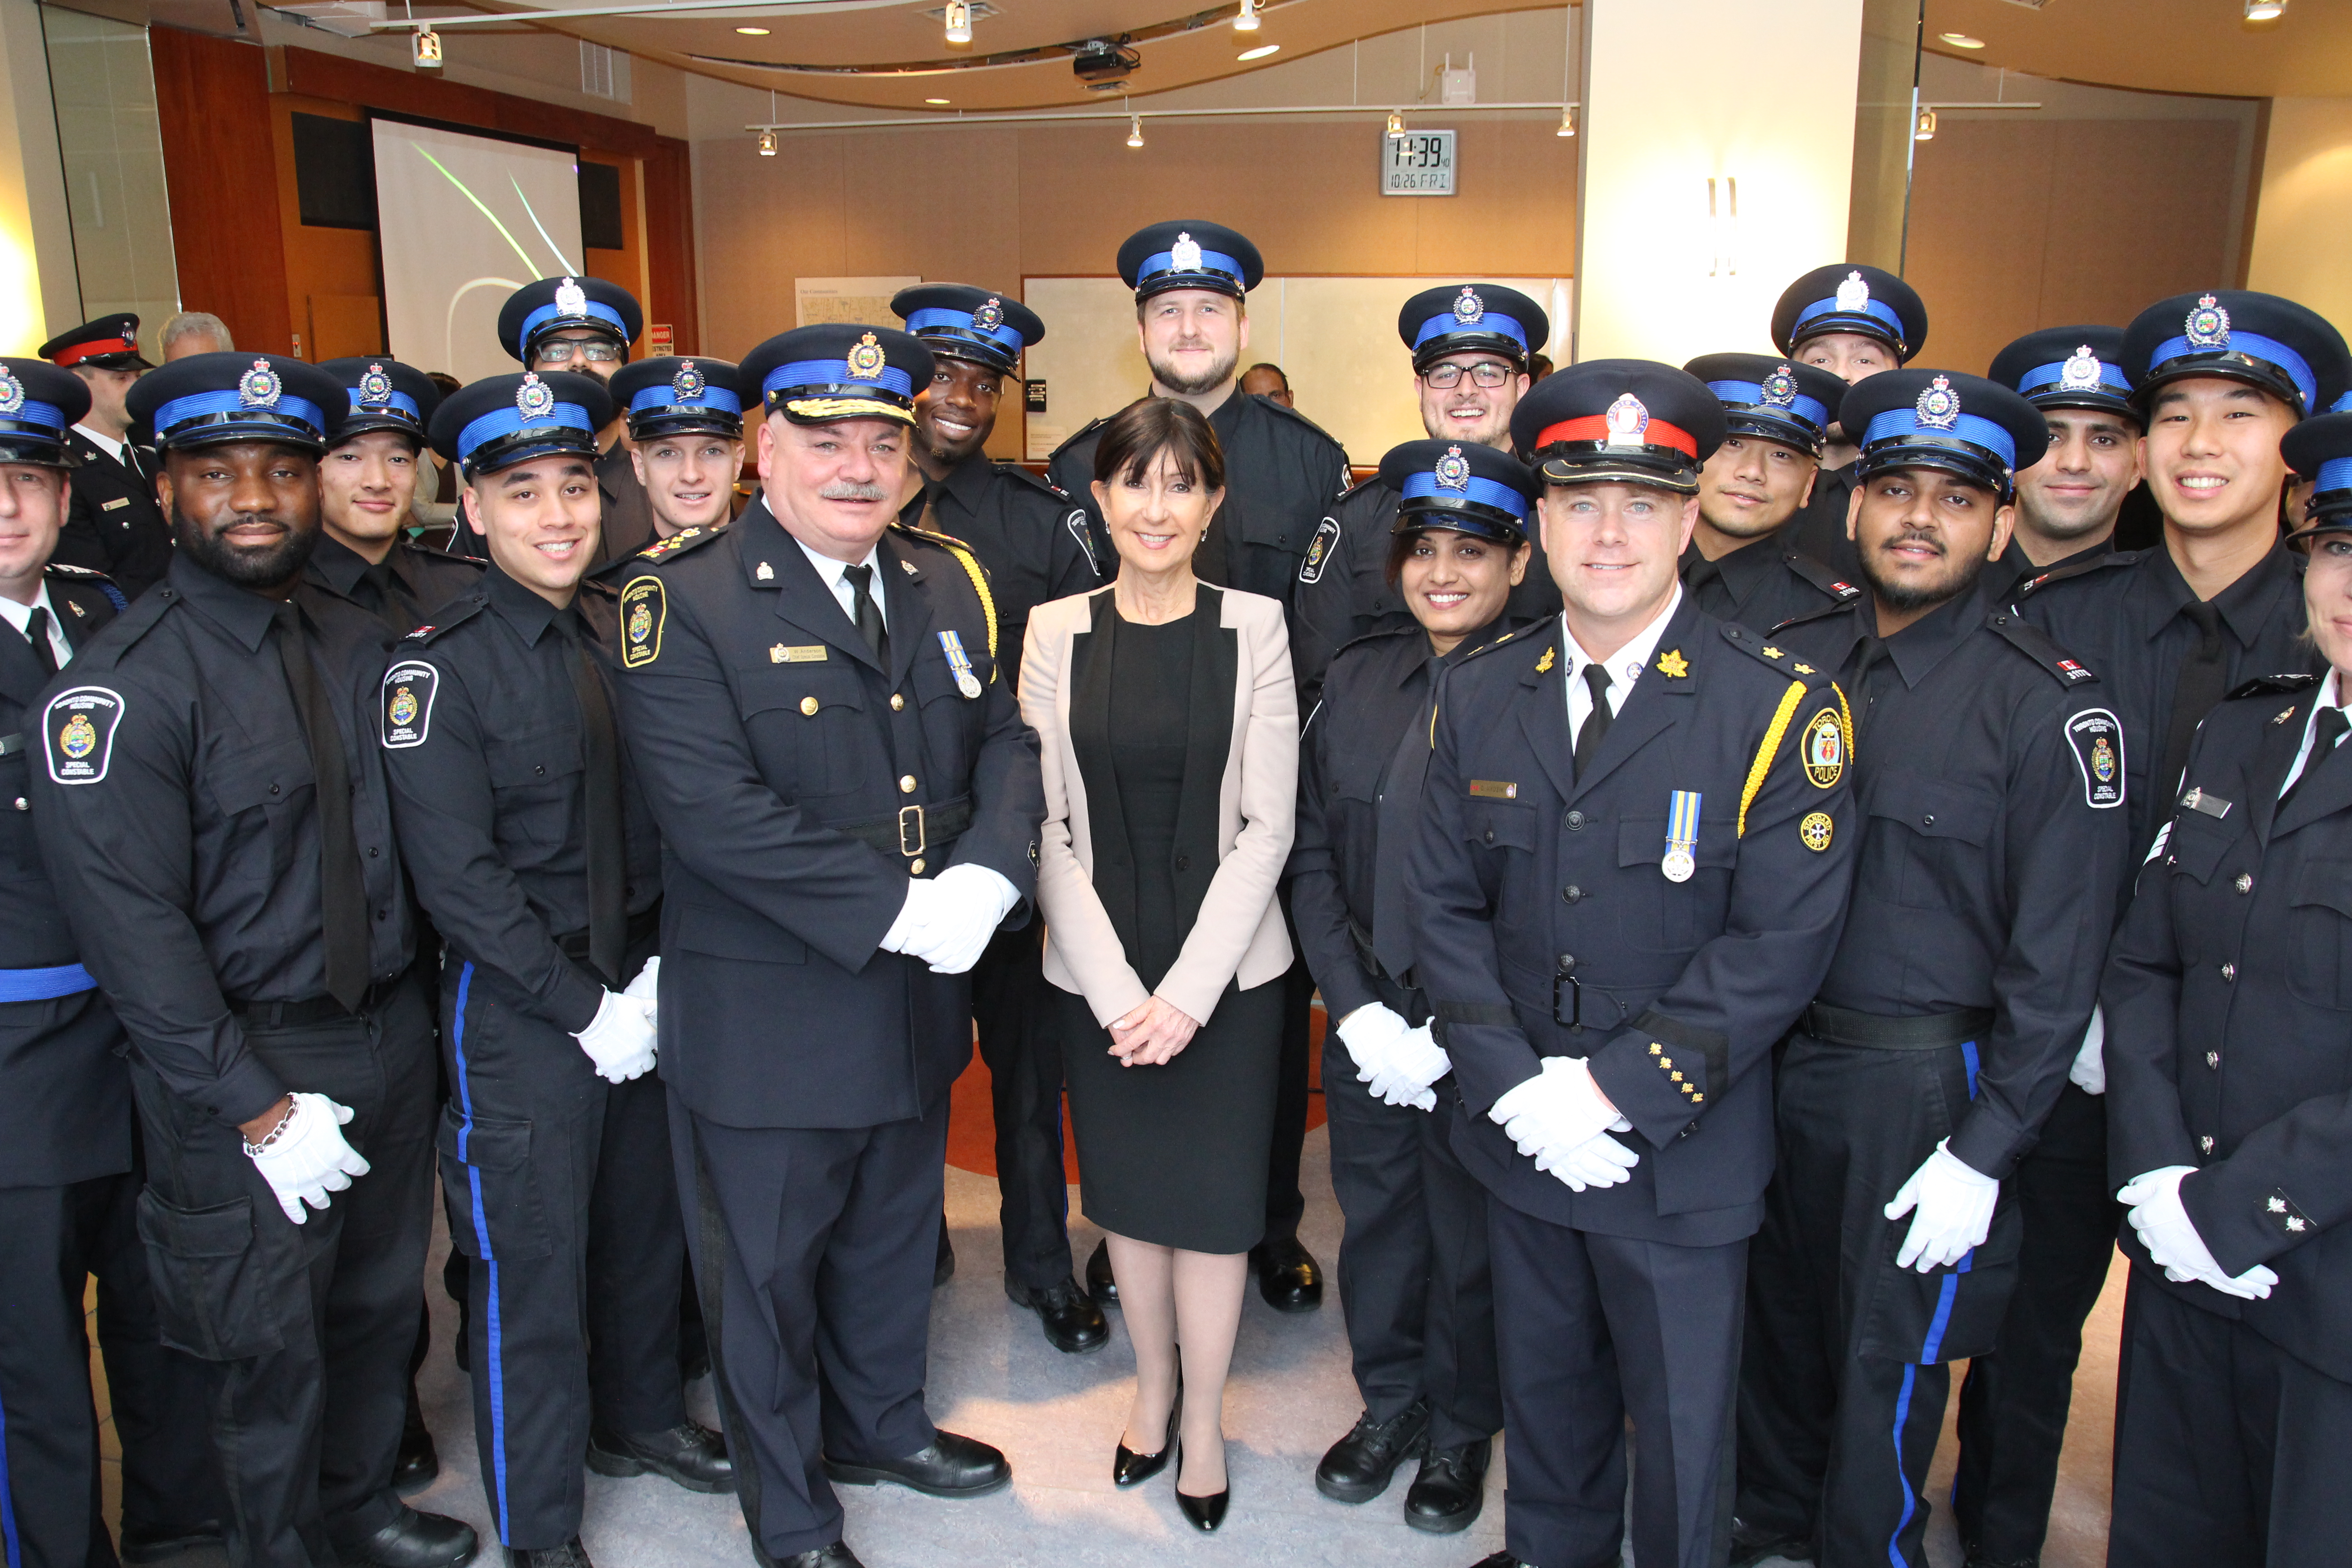 Toronto Community Housing Swearing In Ceremony Highlights Partnership With The Toronto Police Service